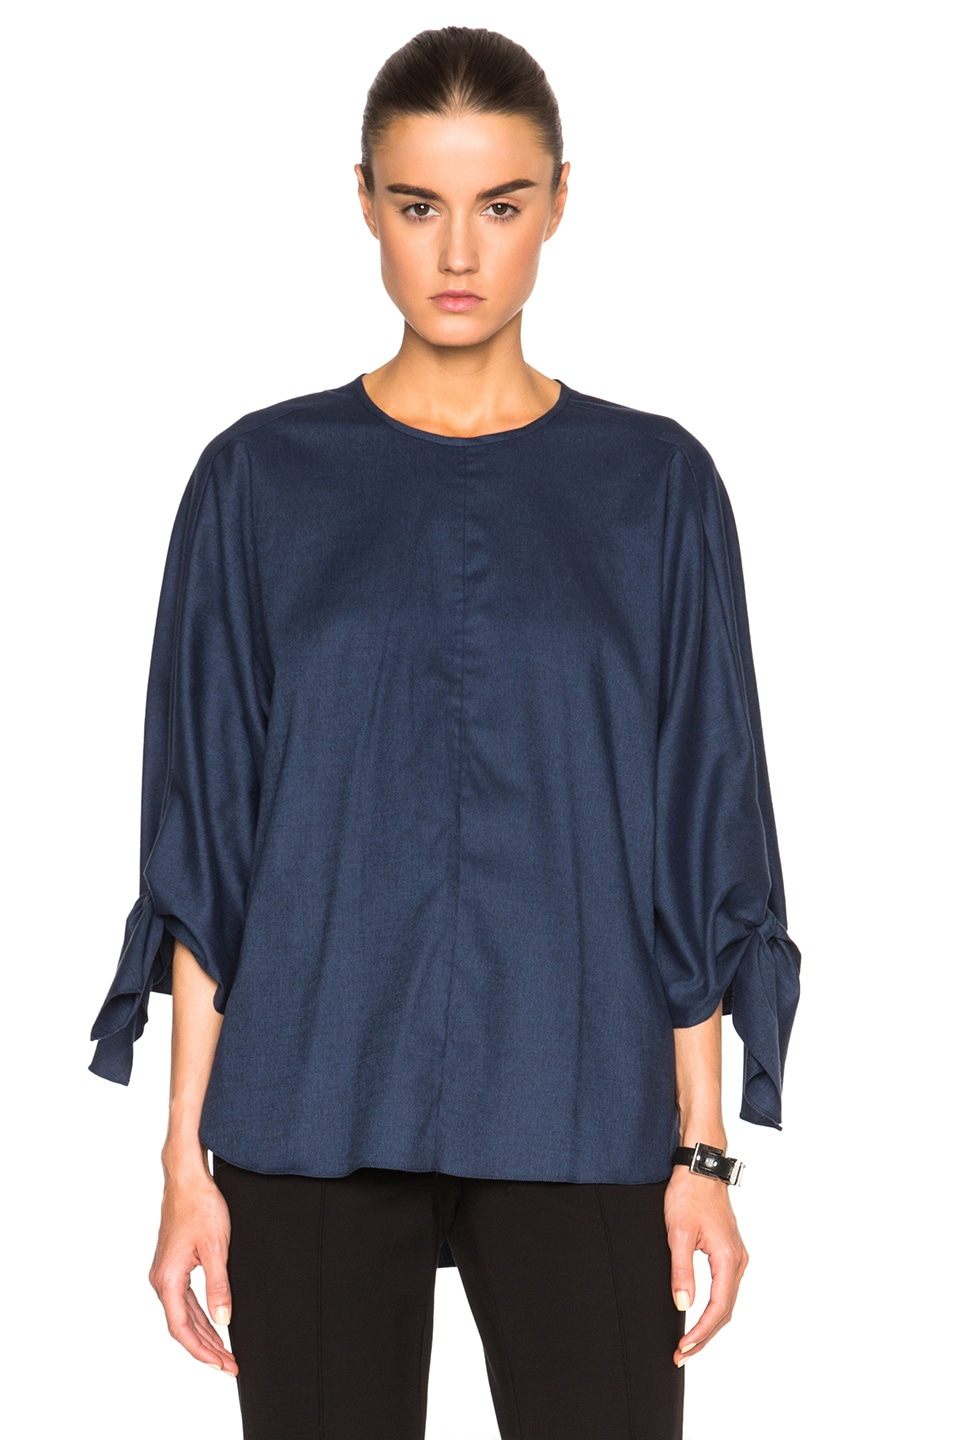 Image 1 of Tibi Sophia Tie Top in Boy Denim